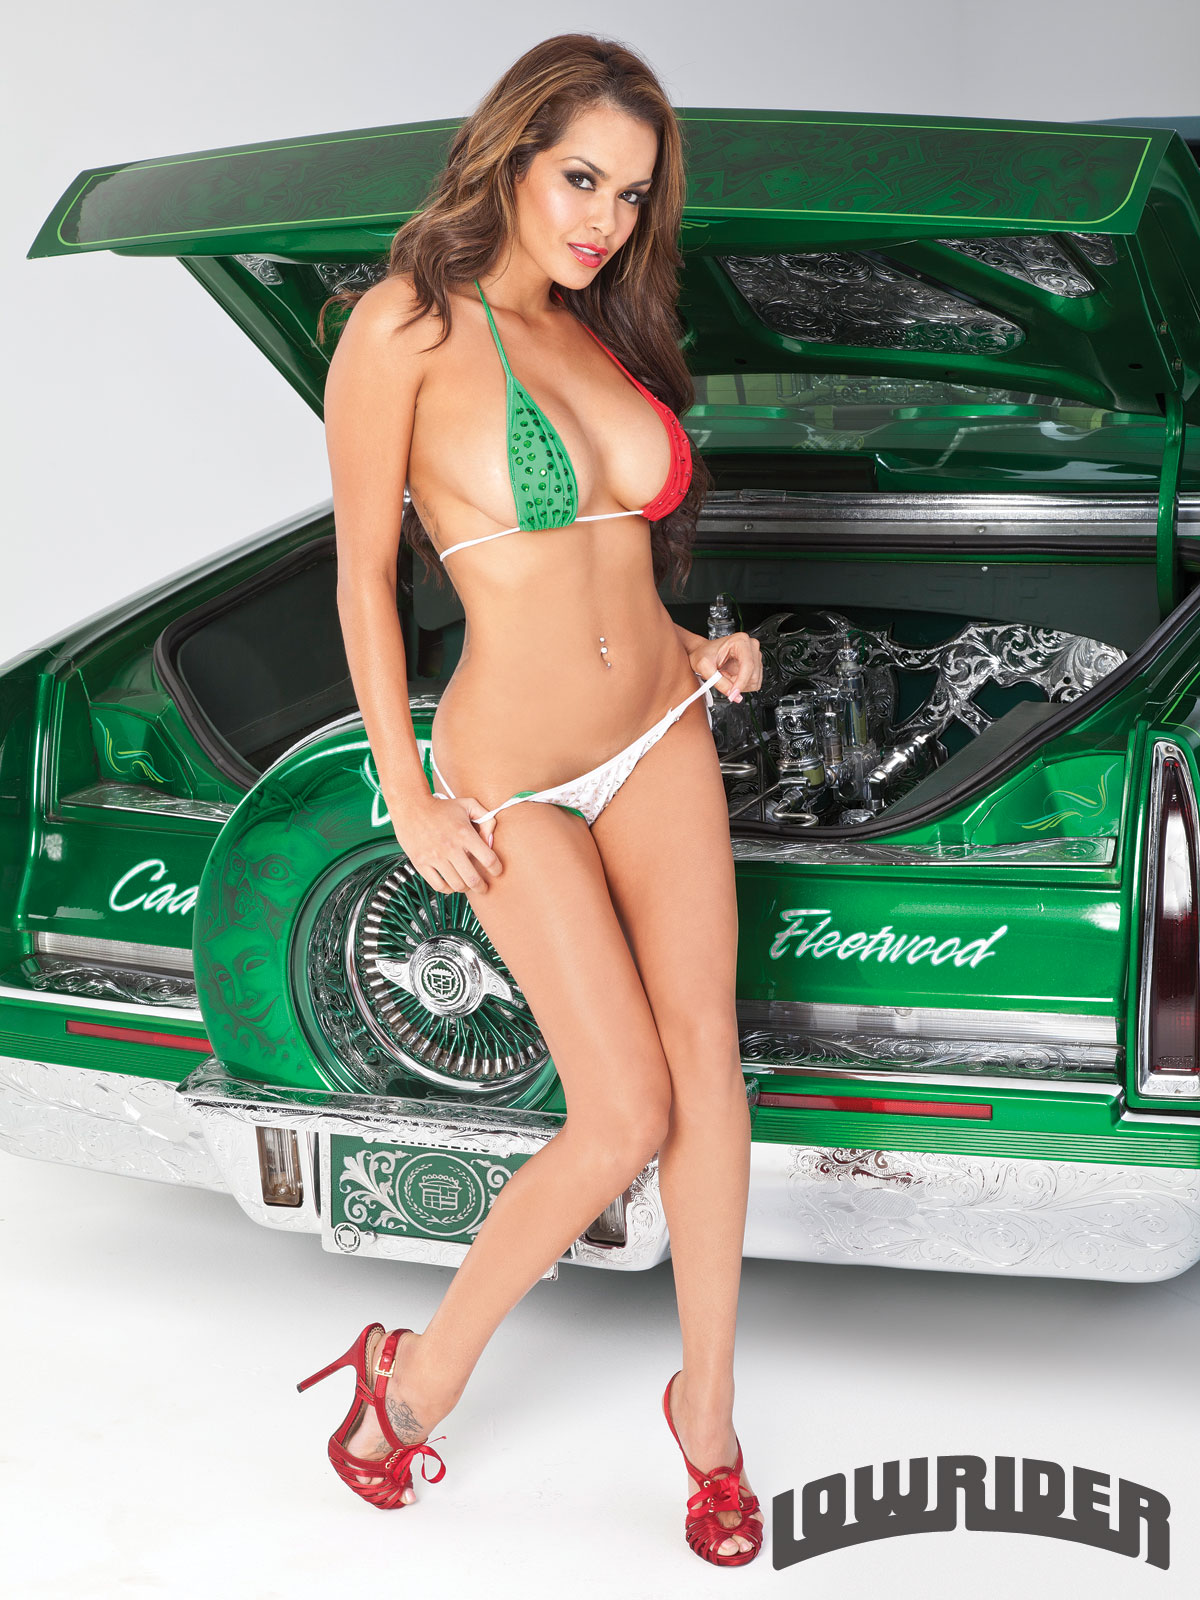 low riders and hot girls